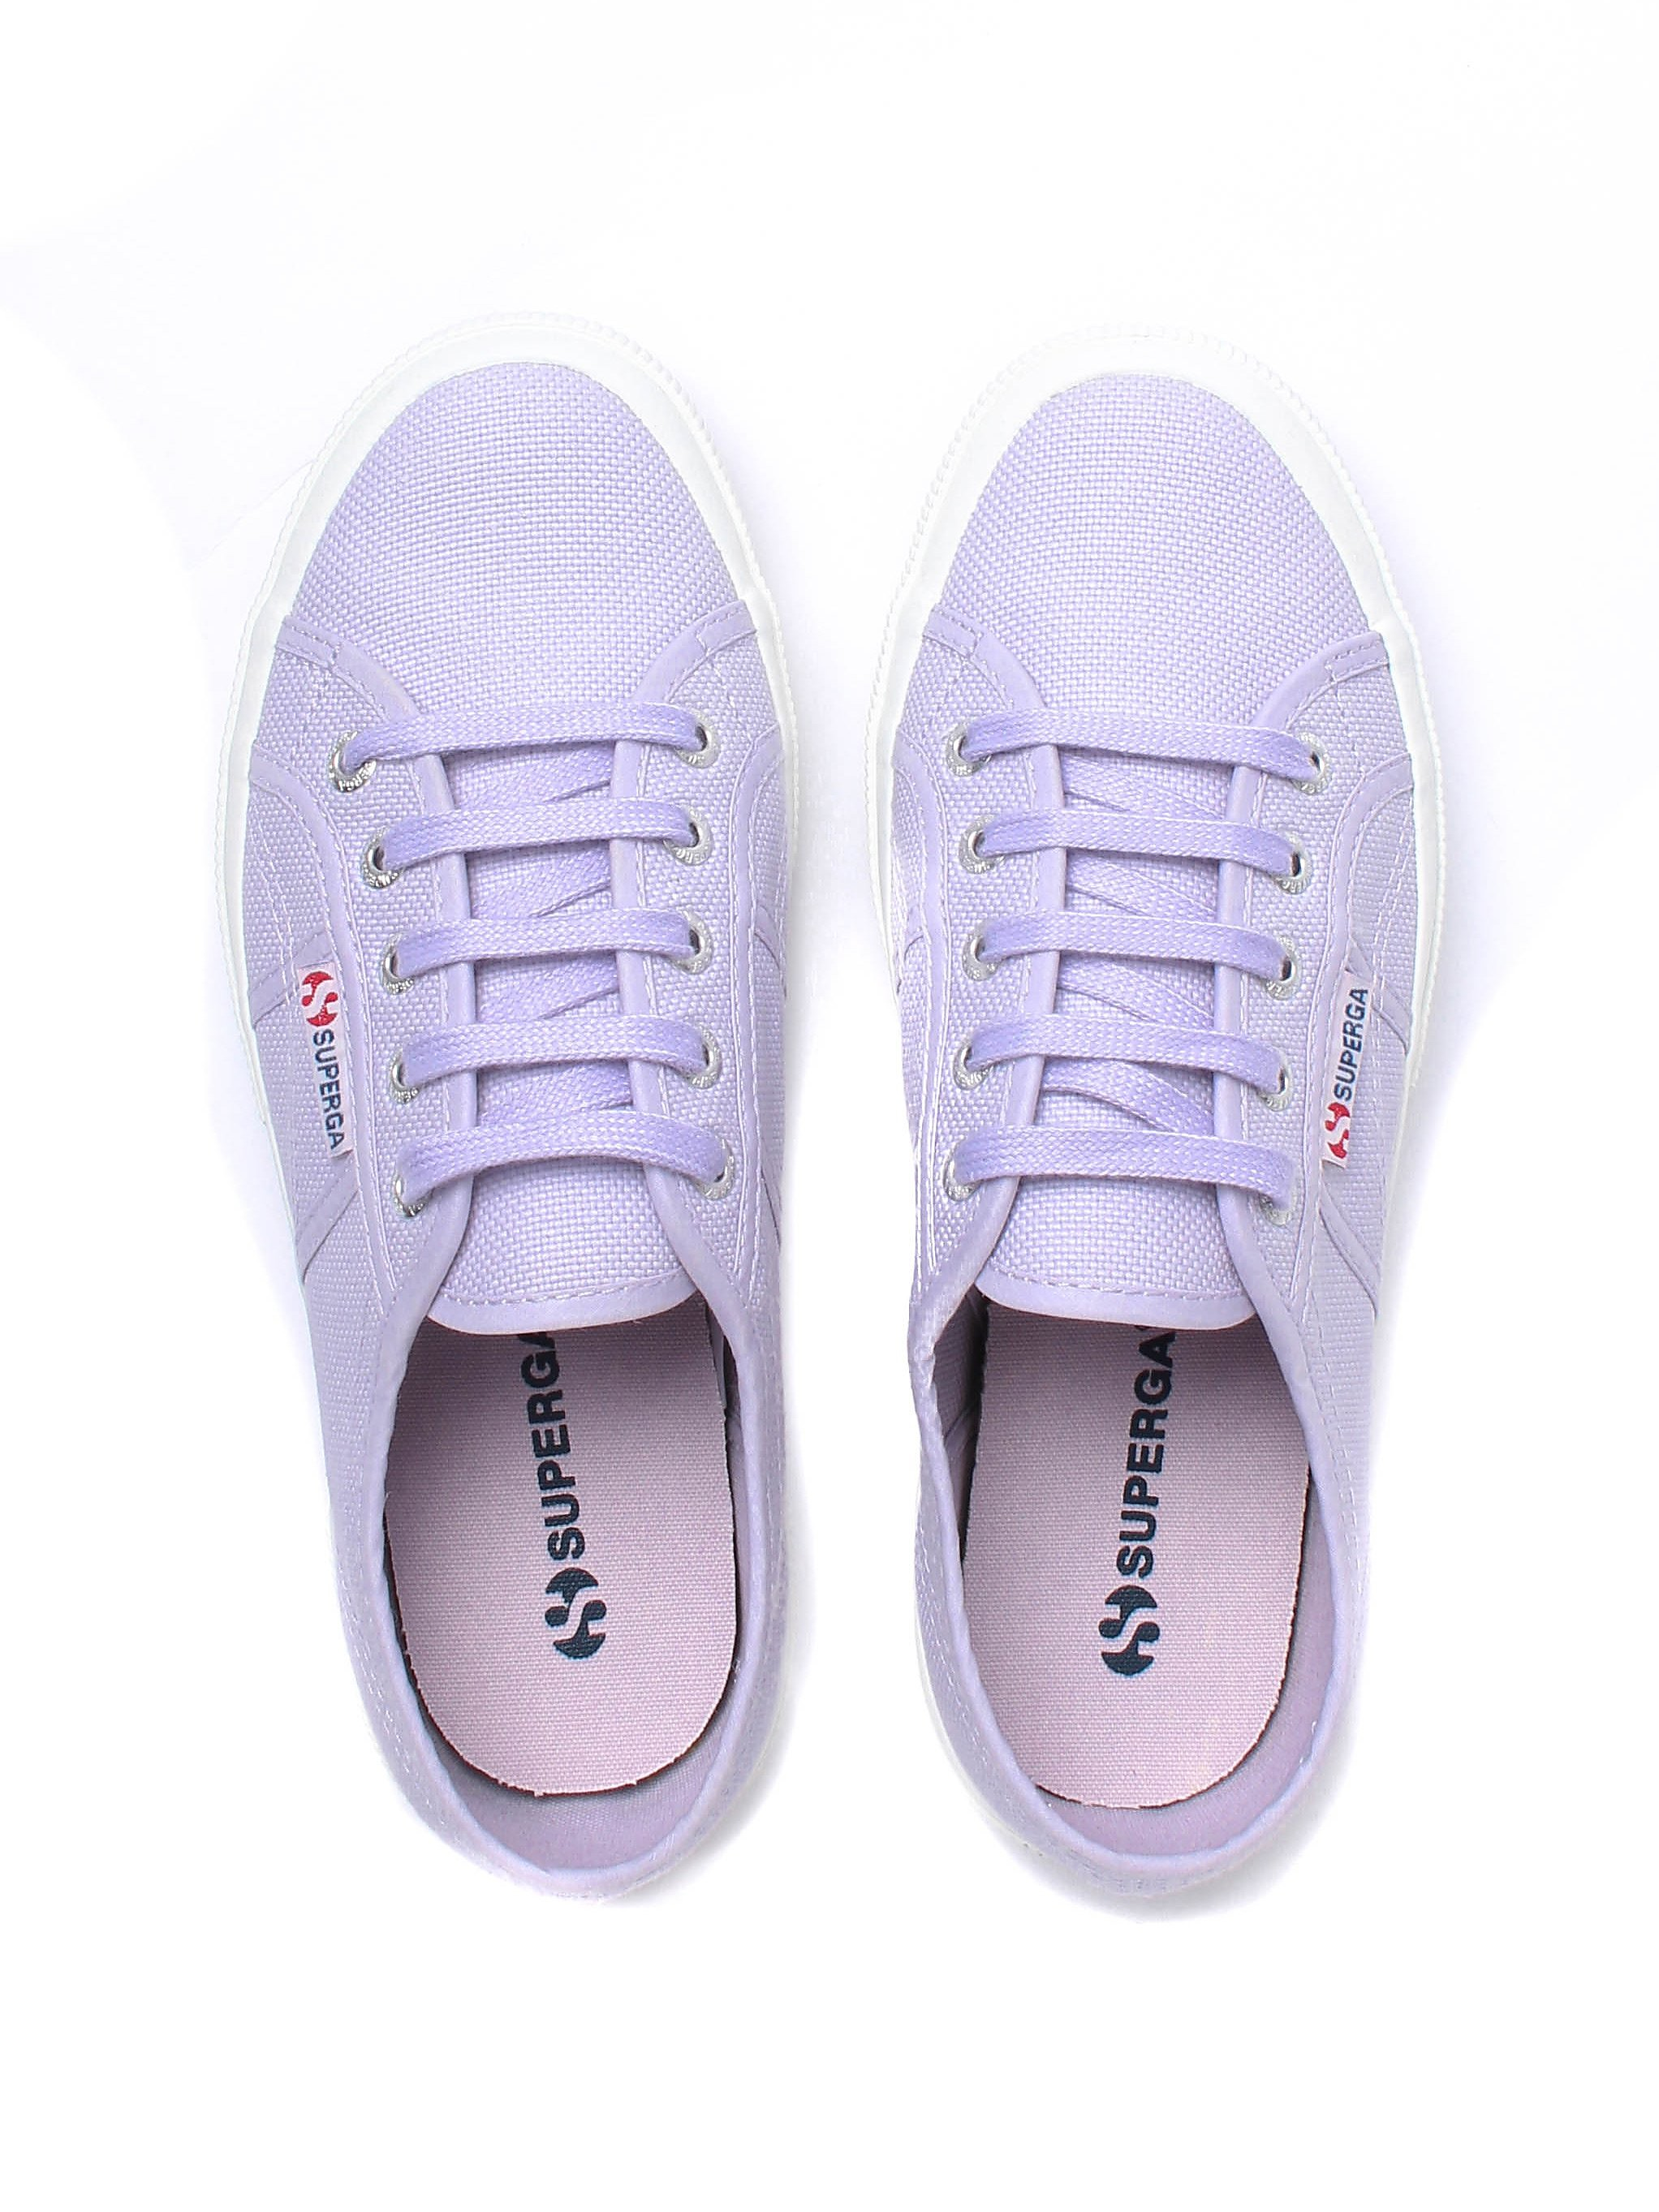 Superga Women's 2750 Cotu Classic Canvas Trainers - Violet Lilac